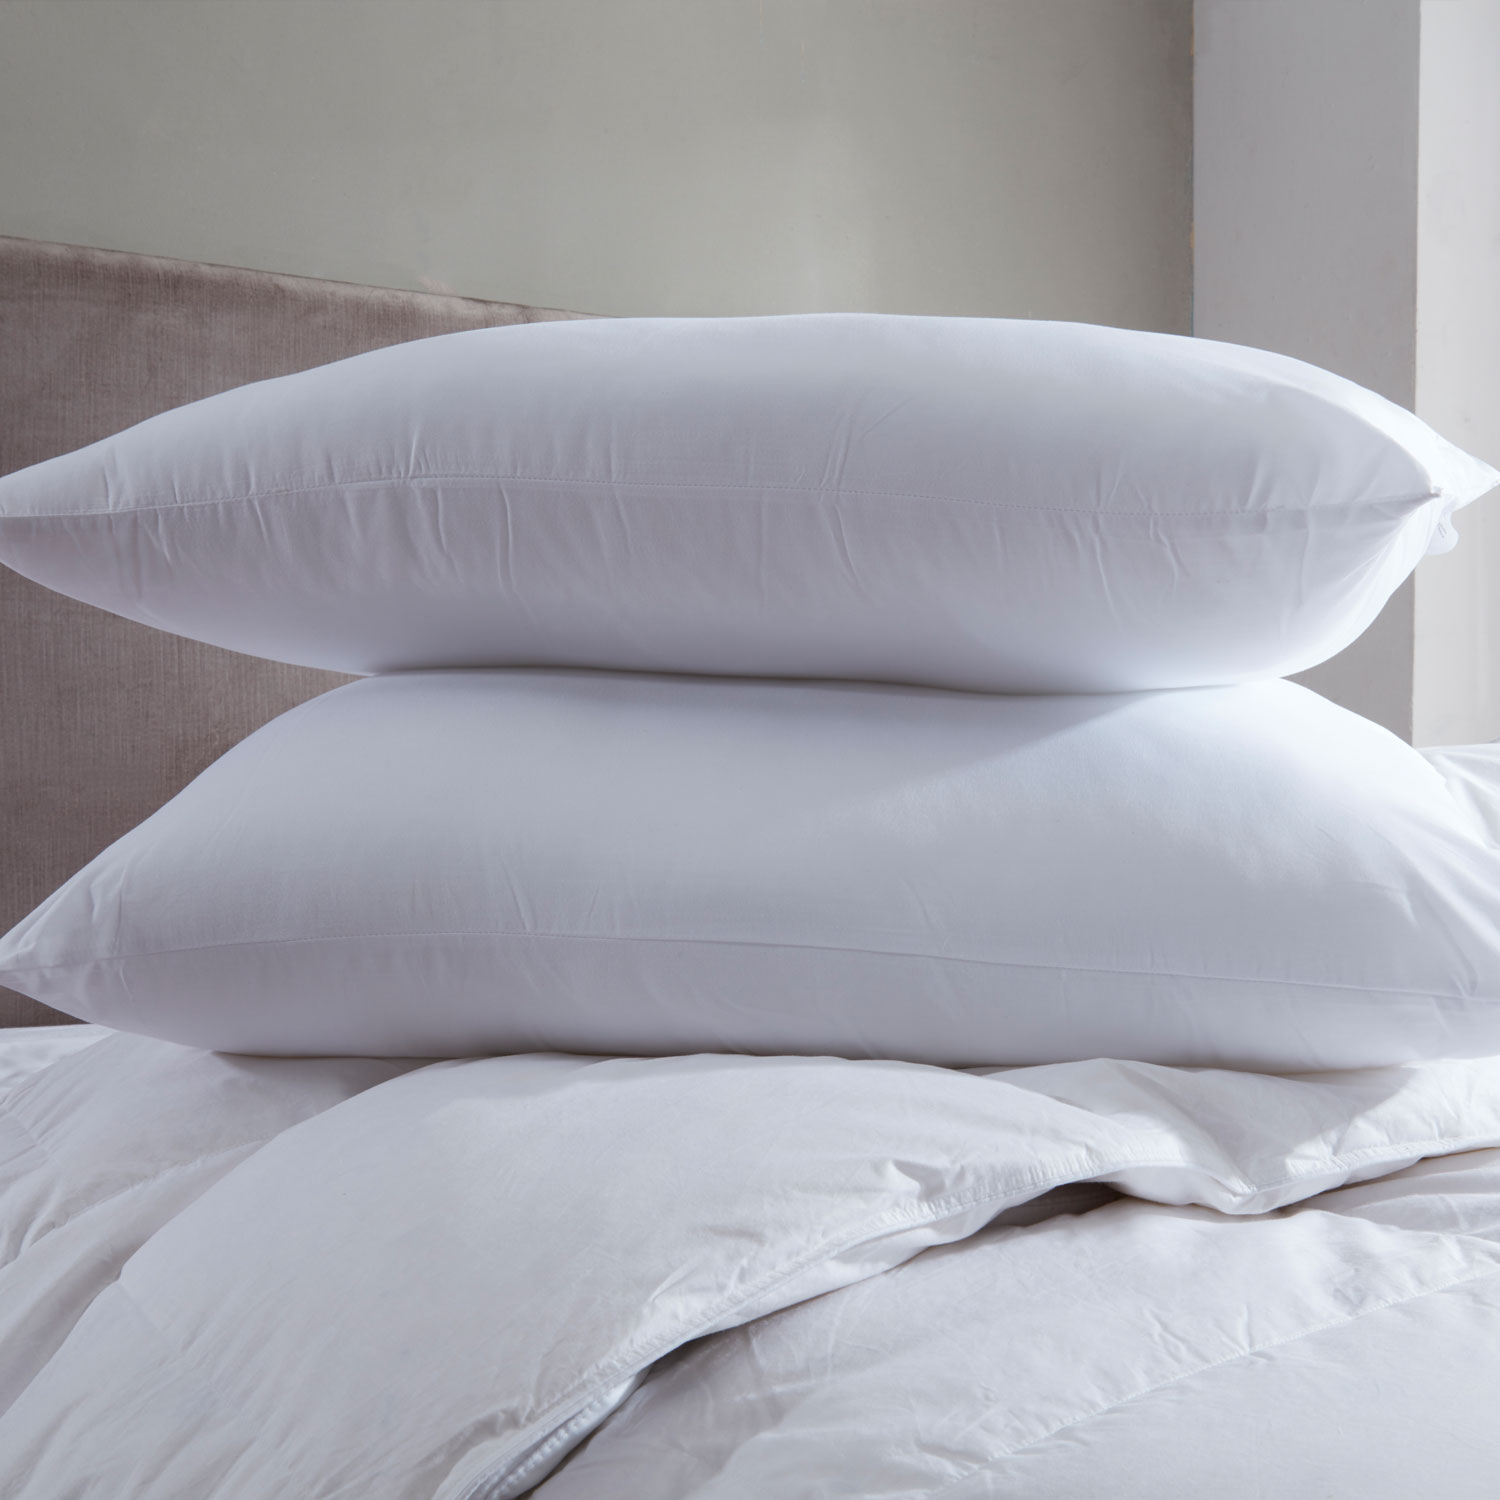 Bargain Bounce Back Pillow - Medium Firm Support (Pair) Stockists